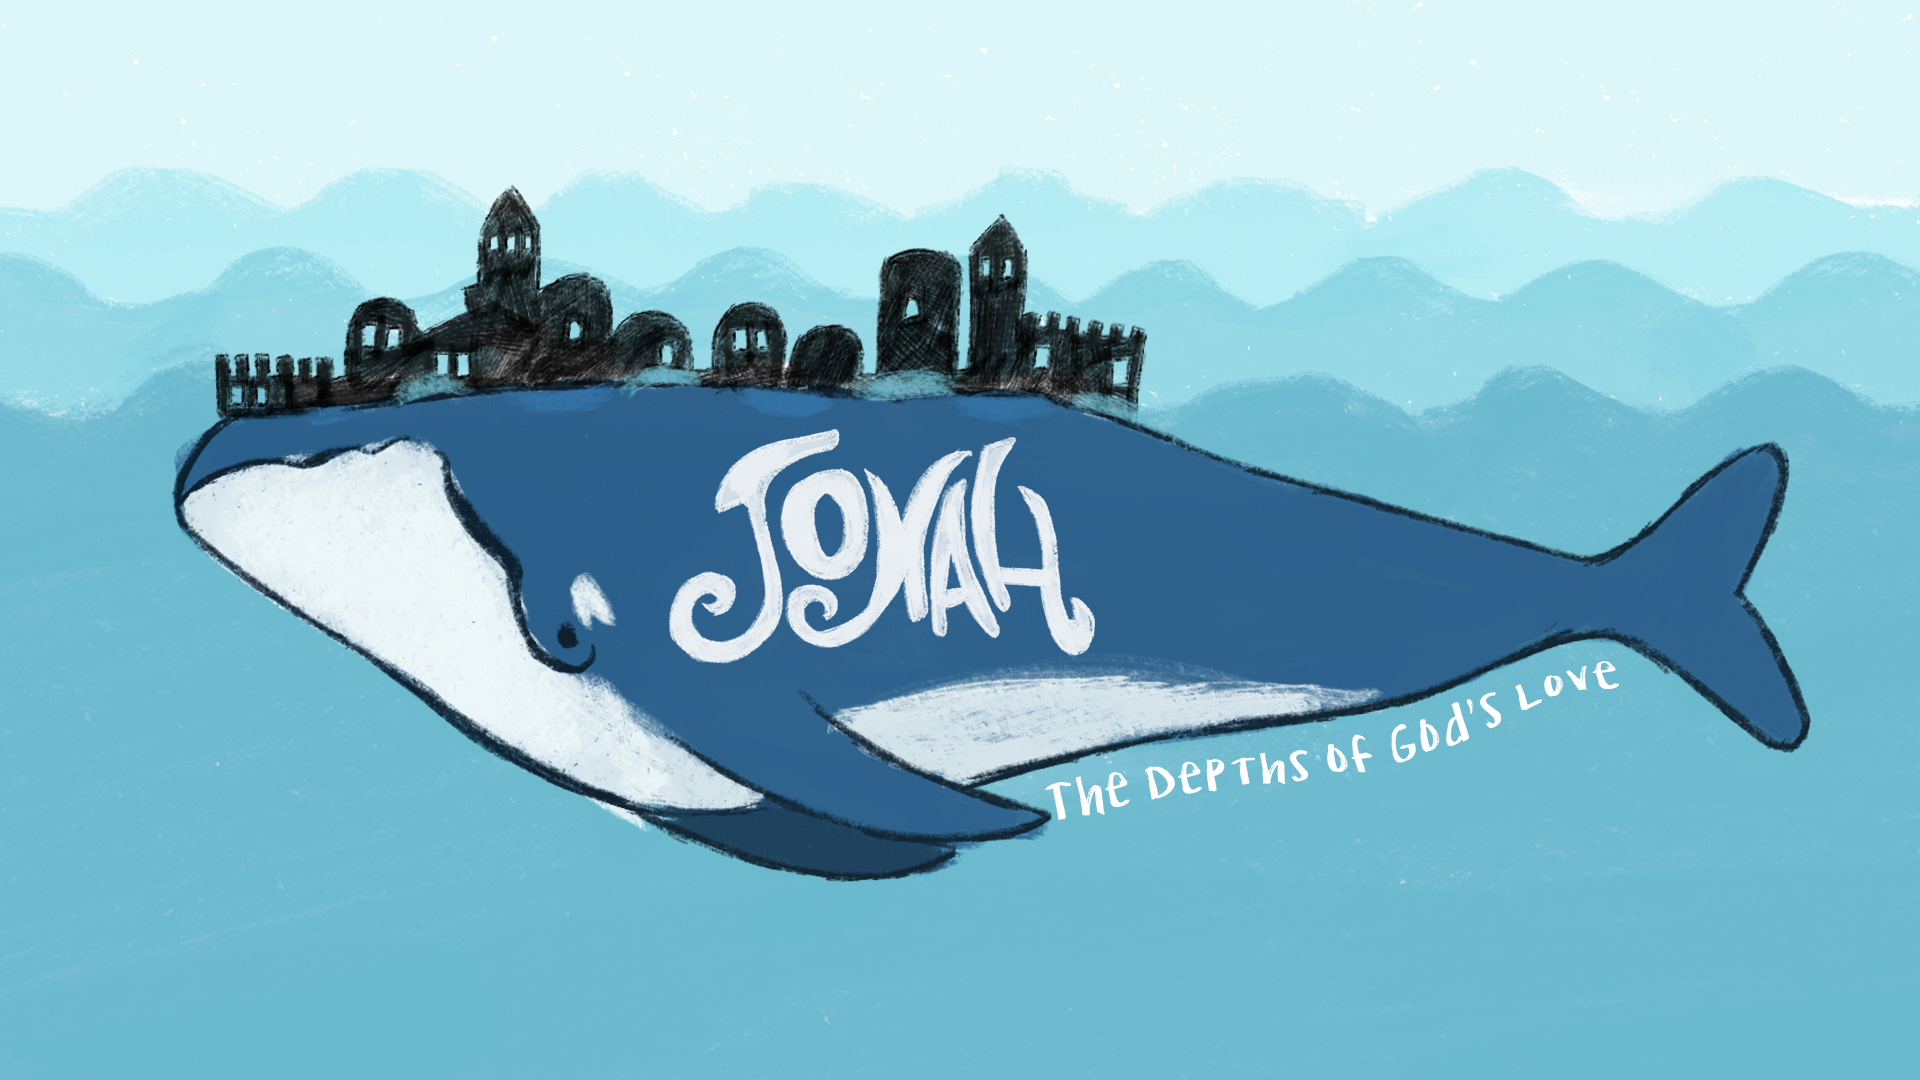 Jonah & The Depths of God